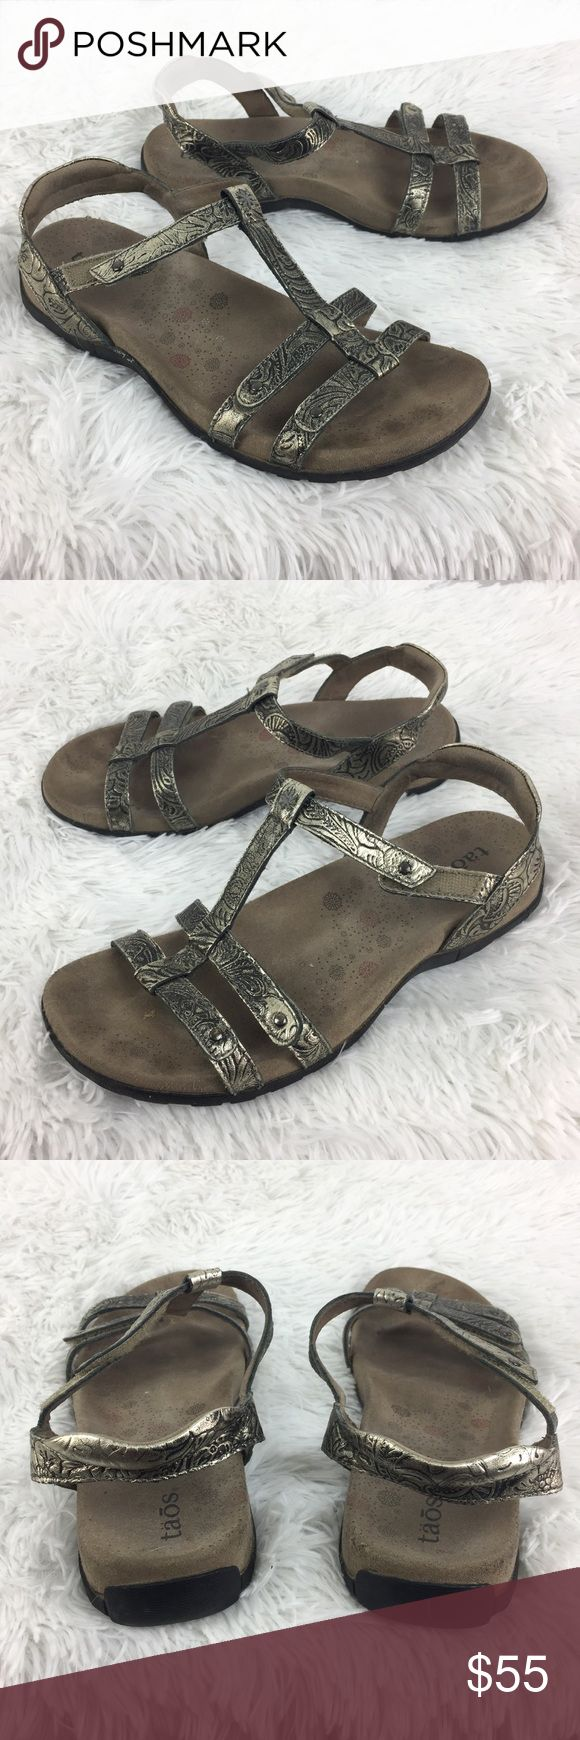 Taos Trophy Embossed leather comfort sandals 8.5 Taos Trophy Embossed Pewter Strappy Leather Sandals Comfort Women's Size 8 EU 39  Size: 8 M Color: Pewter Silver Style Name/Number: Trophy  In good preowned condition with no known flaws and light overall wear. Taos Footwear Shoes Sandals